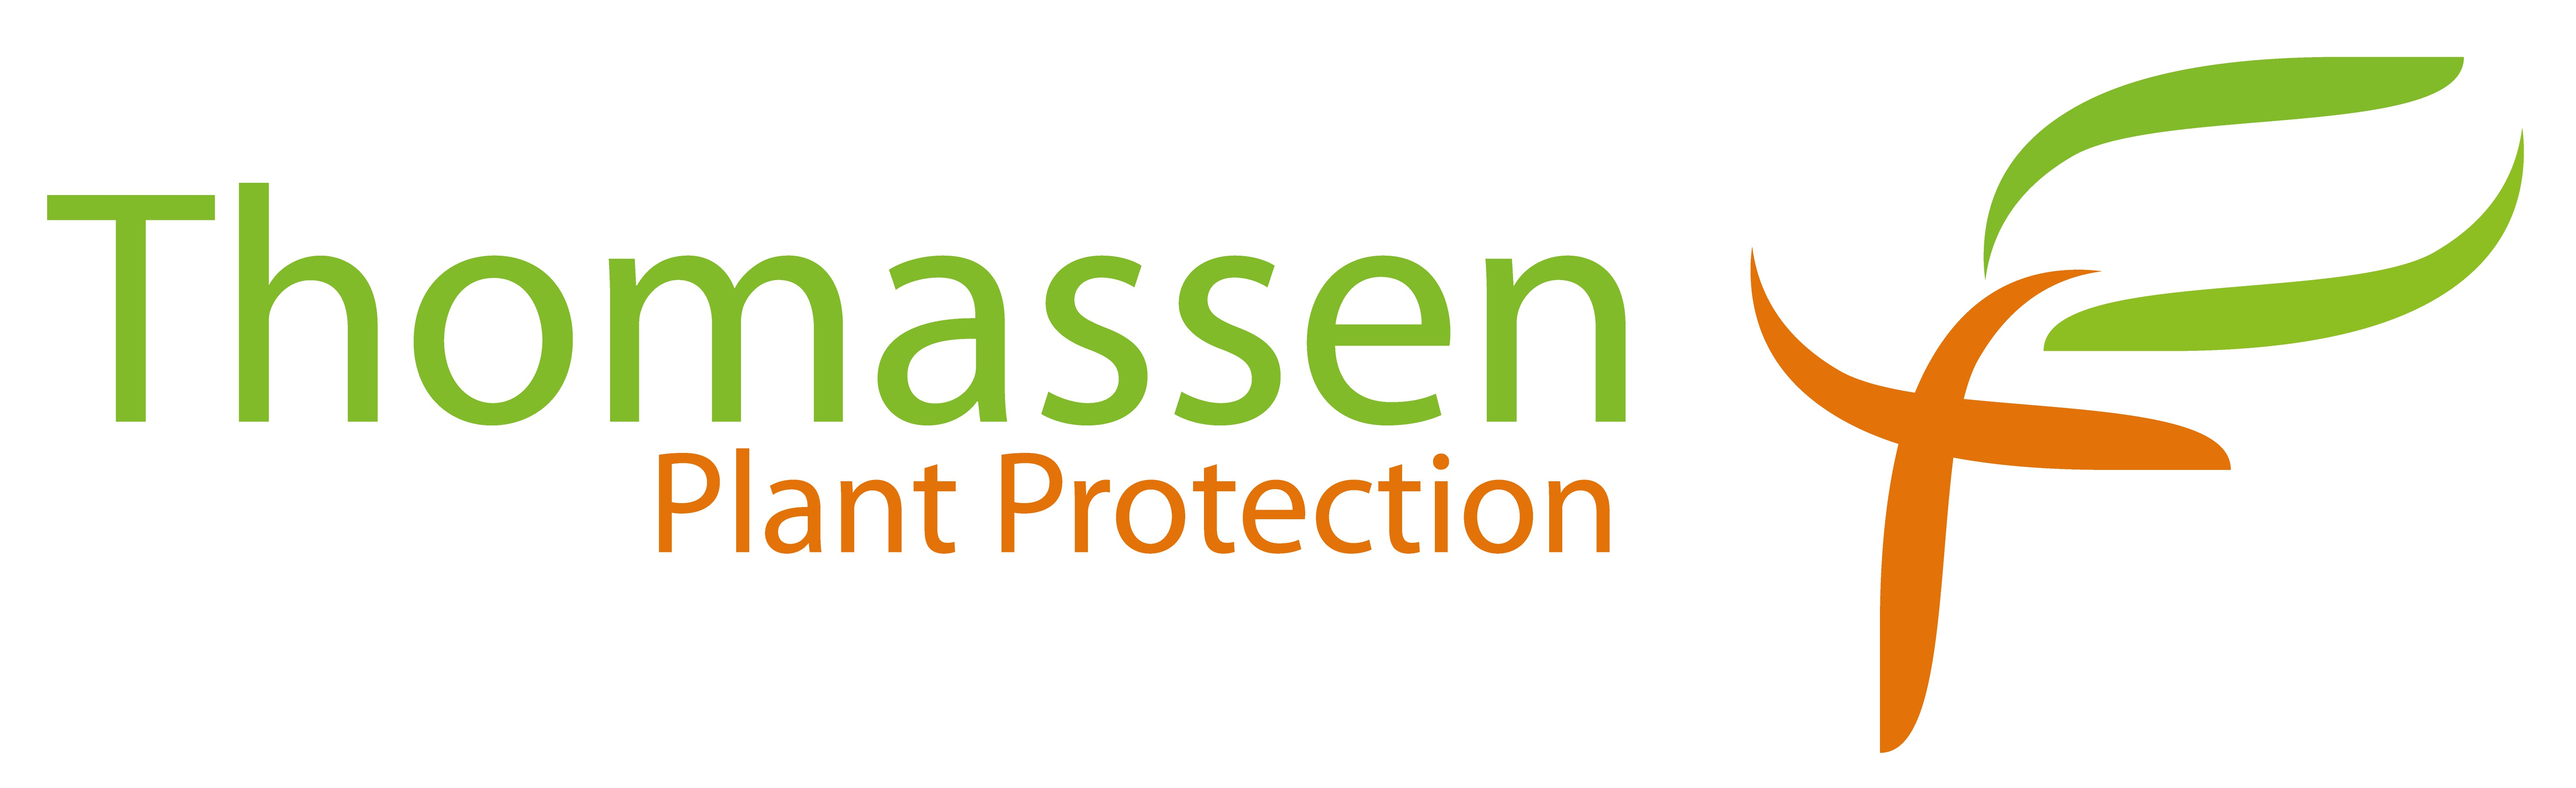 Thomassen Plant Protection